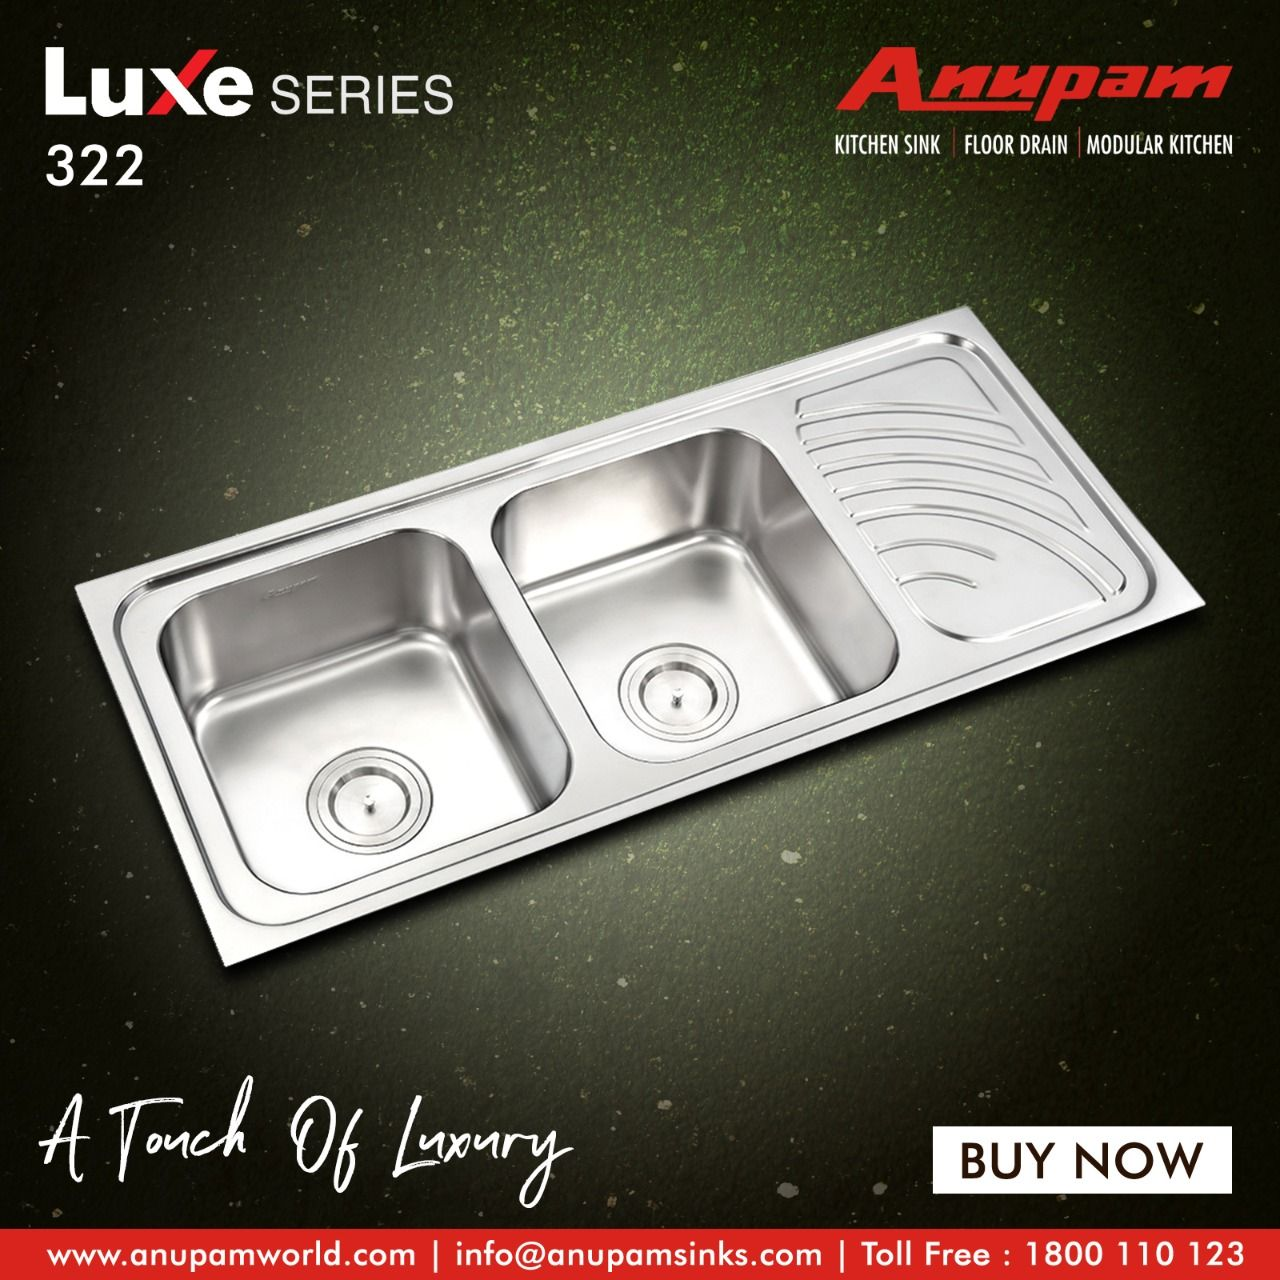 An Amazingly Efficient Doublebowlsink With Drainboard By Anupam Giving Your Kitchenarea A Touch Of Lux Double Bowl Sink Stainless Steel Grades Kitchen Sink